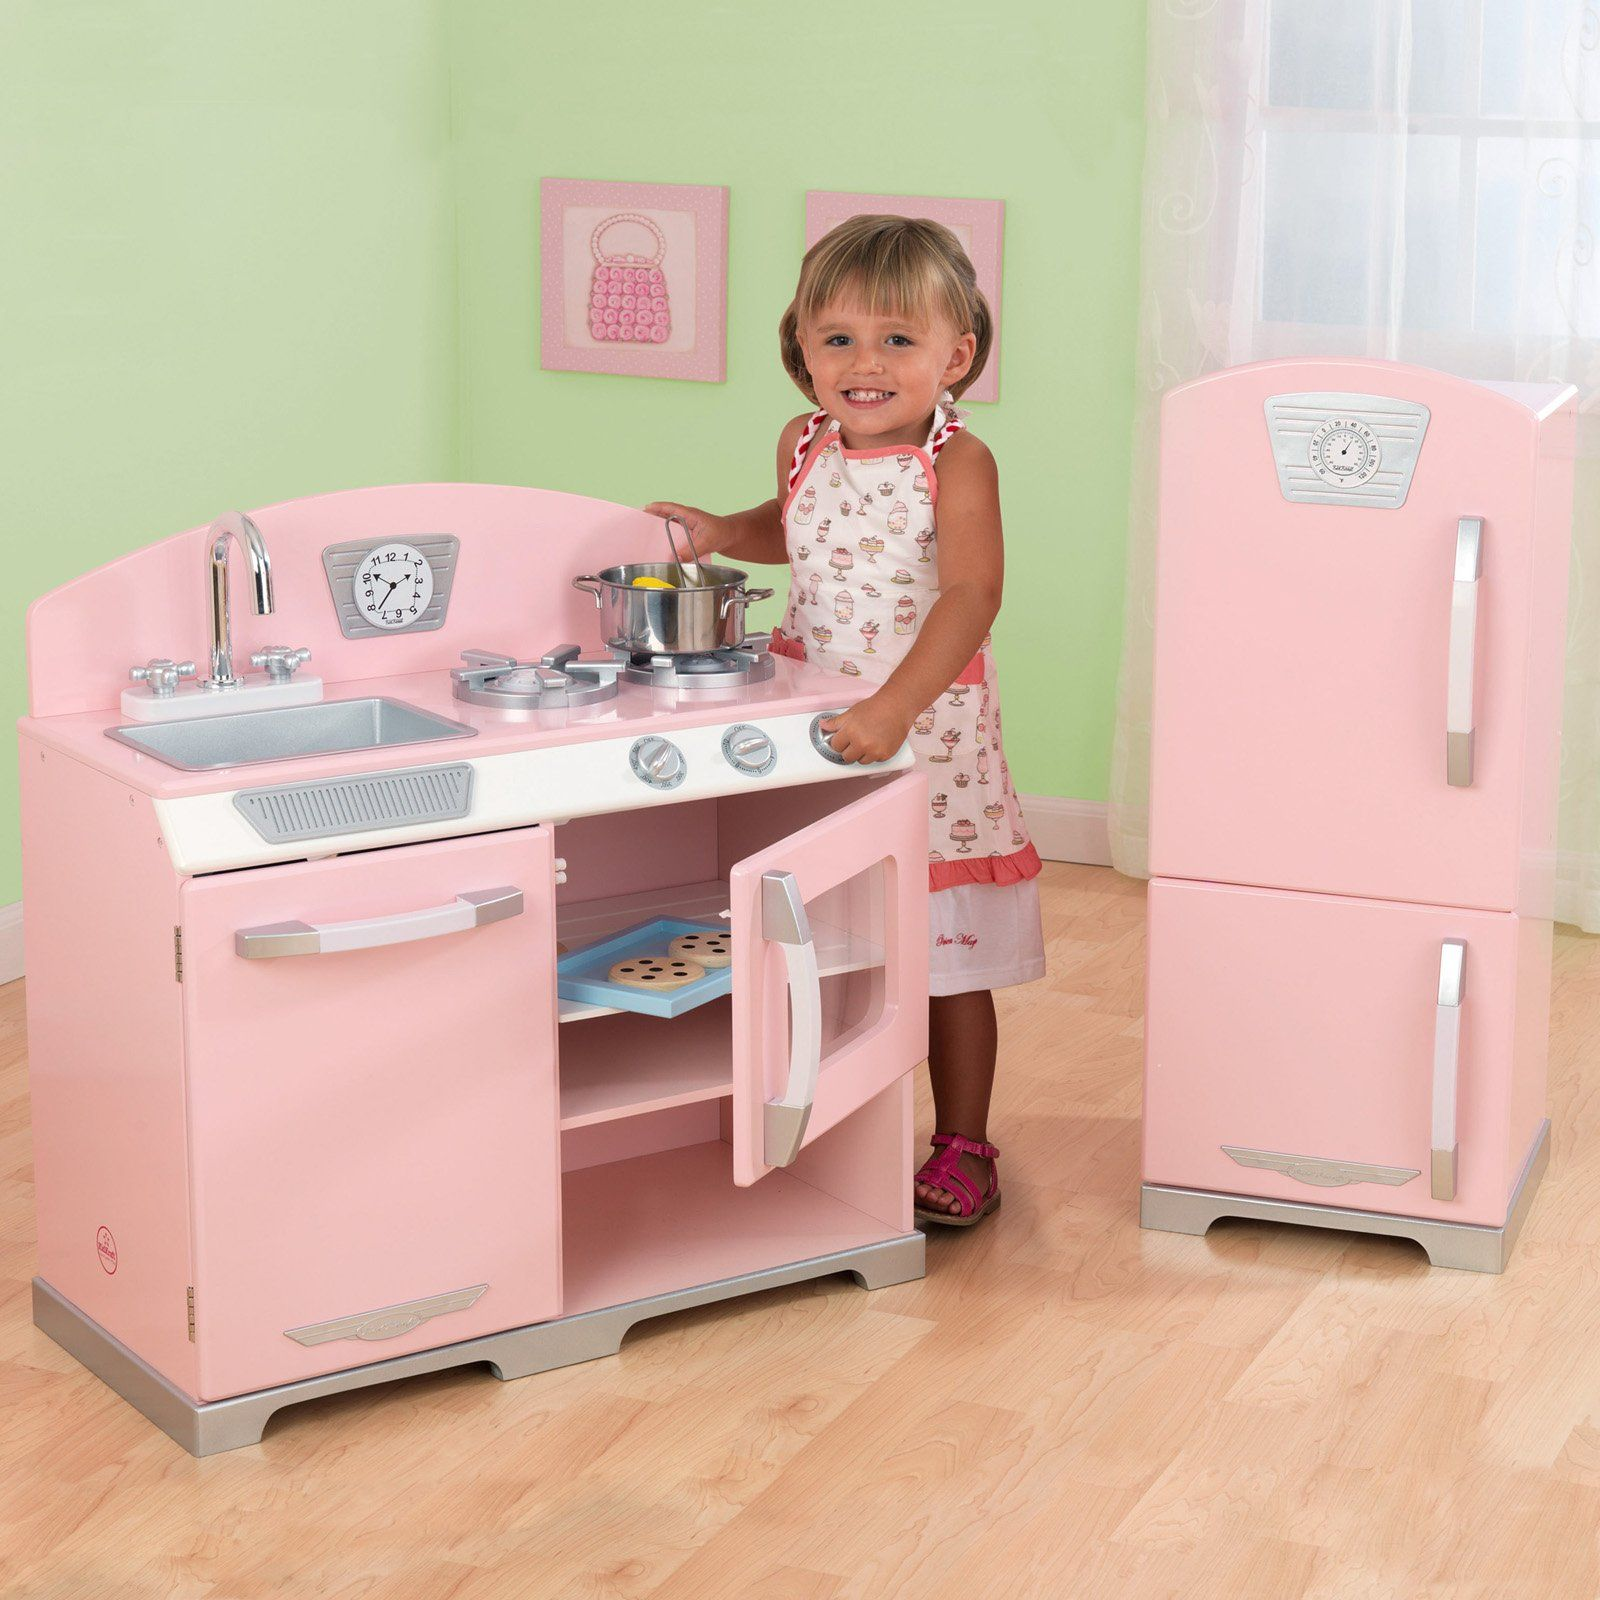 Kidkraft Pink Retro Kitchen & Refrigerator 53160 Century Cabinets Have To It 2 Piece And